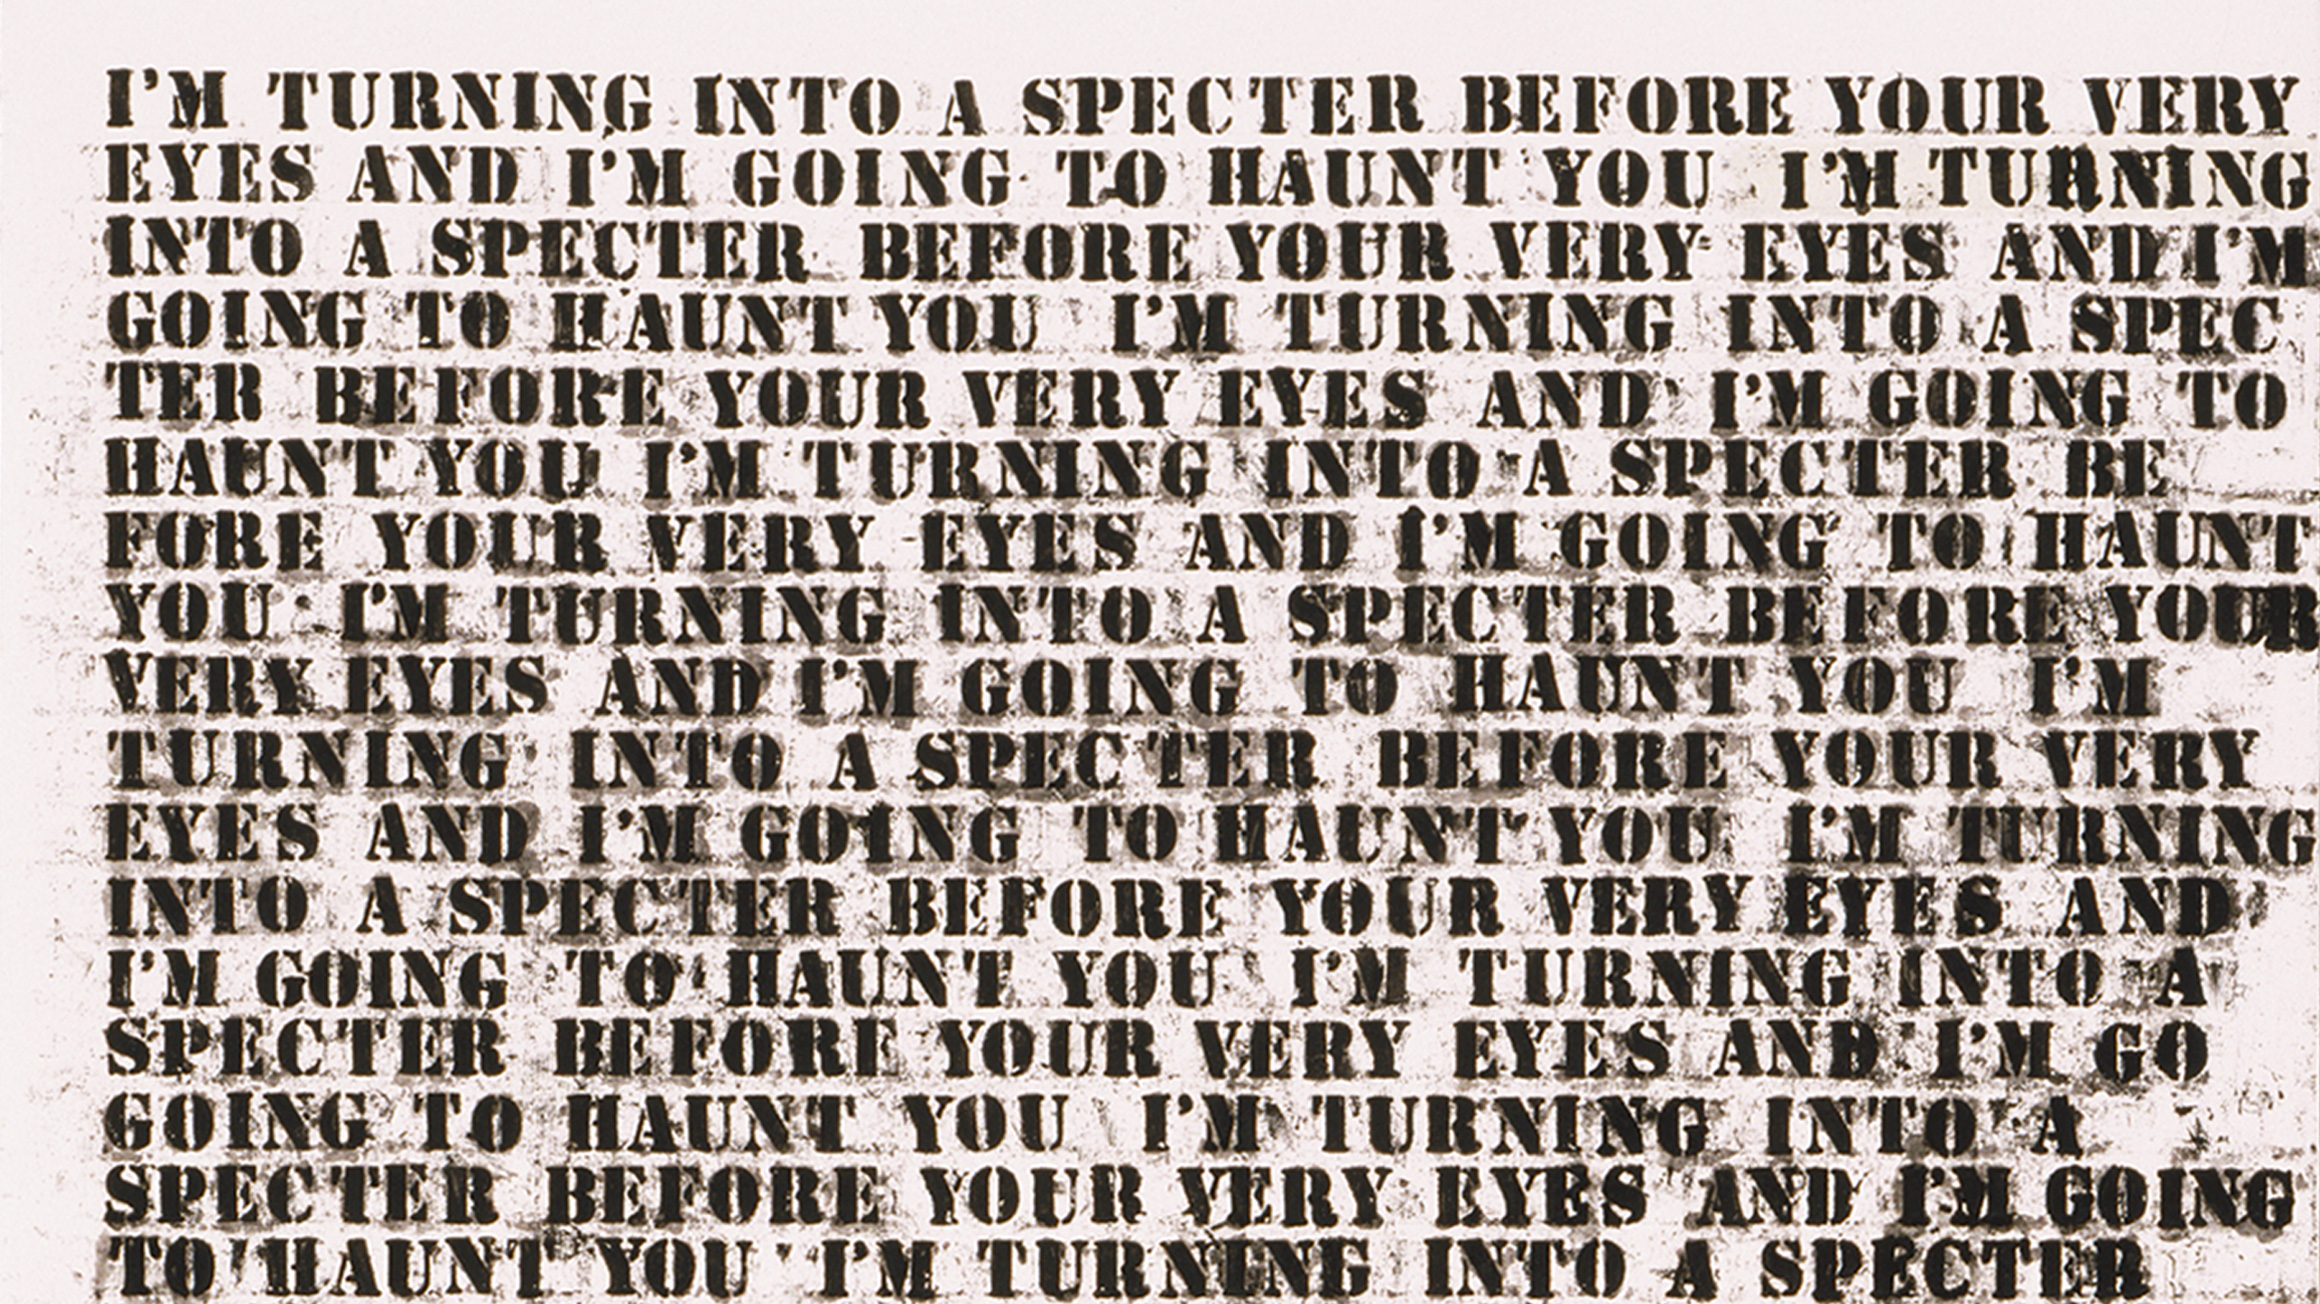 Untitled (I'm Turning Into a Specter before Your Very Eyes and I'm Going to Haunt You) (detail), 1992, by Glenn Ligon